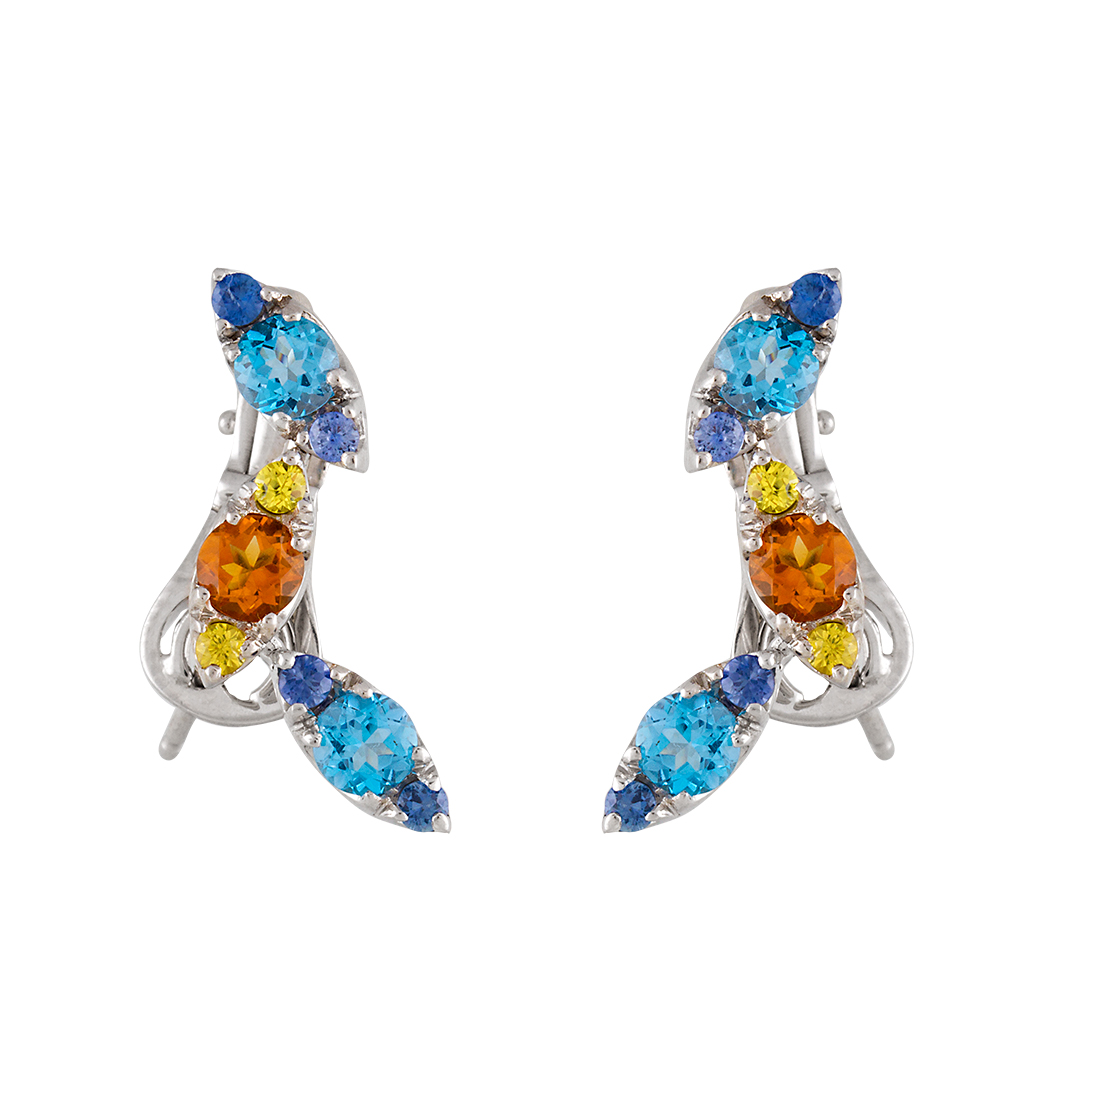 "Image of ""Pasquale Bruni 18k White Gold Blue Topaz and Citrine Drop Earrings"""